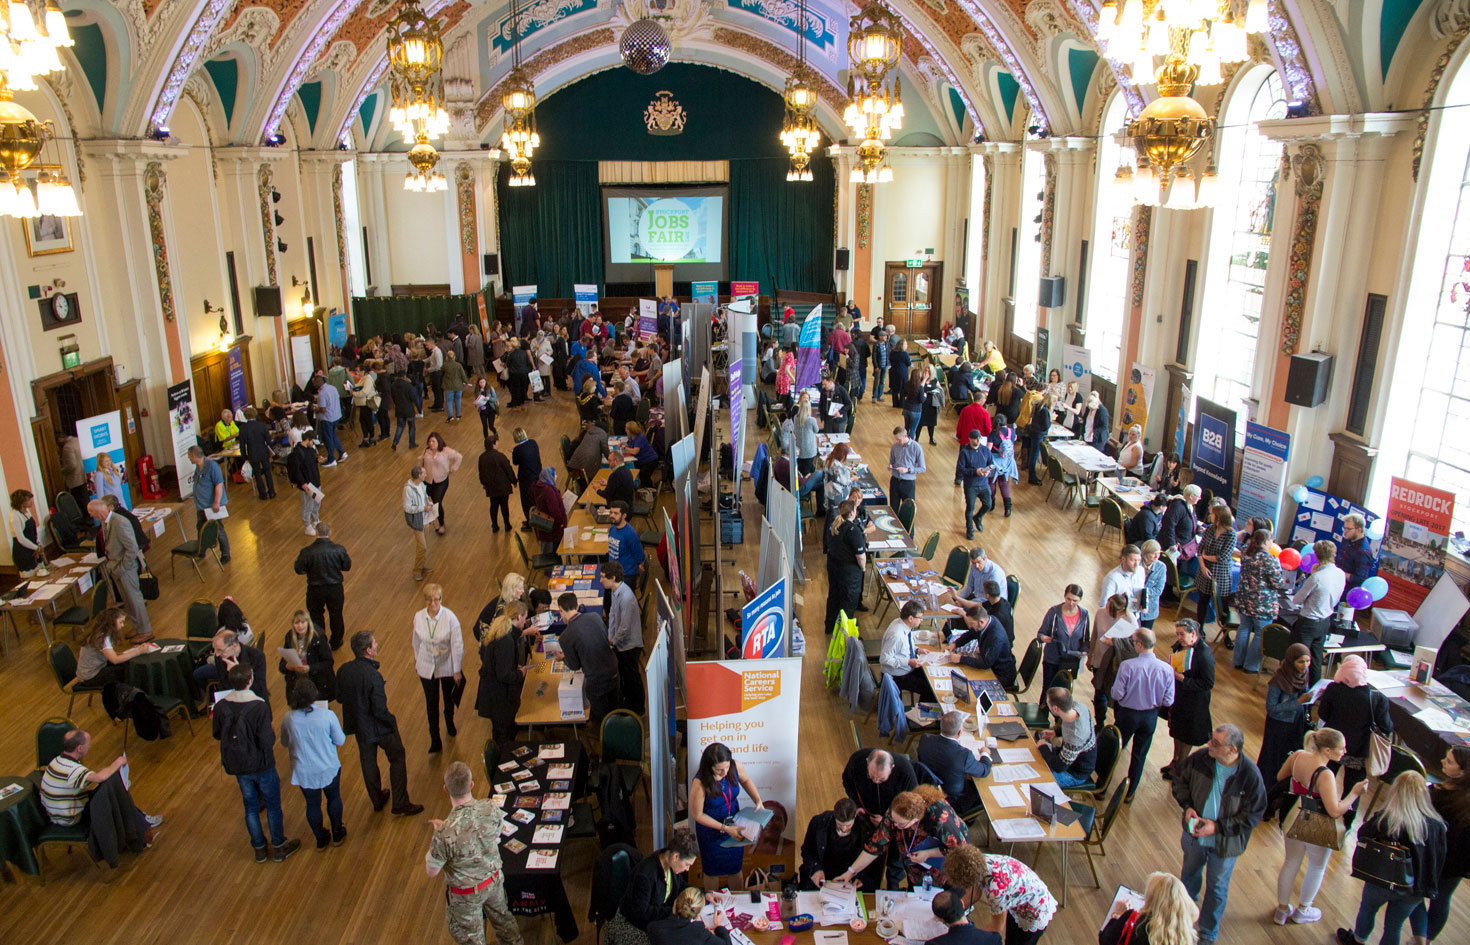 Jobs Fair draws record crowds